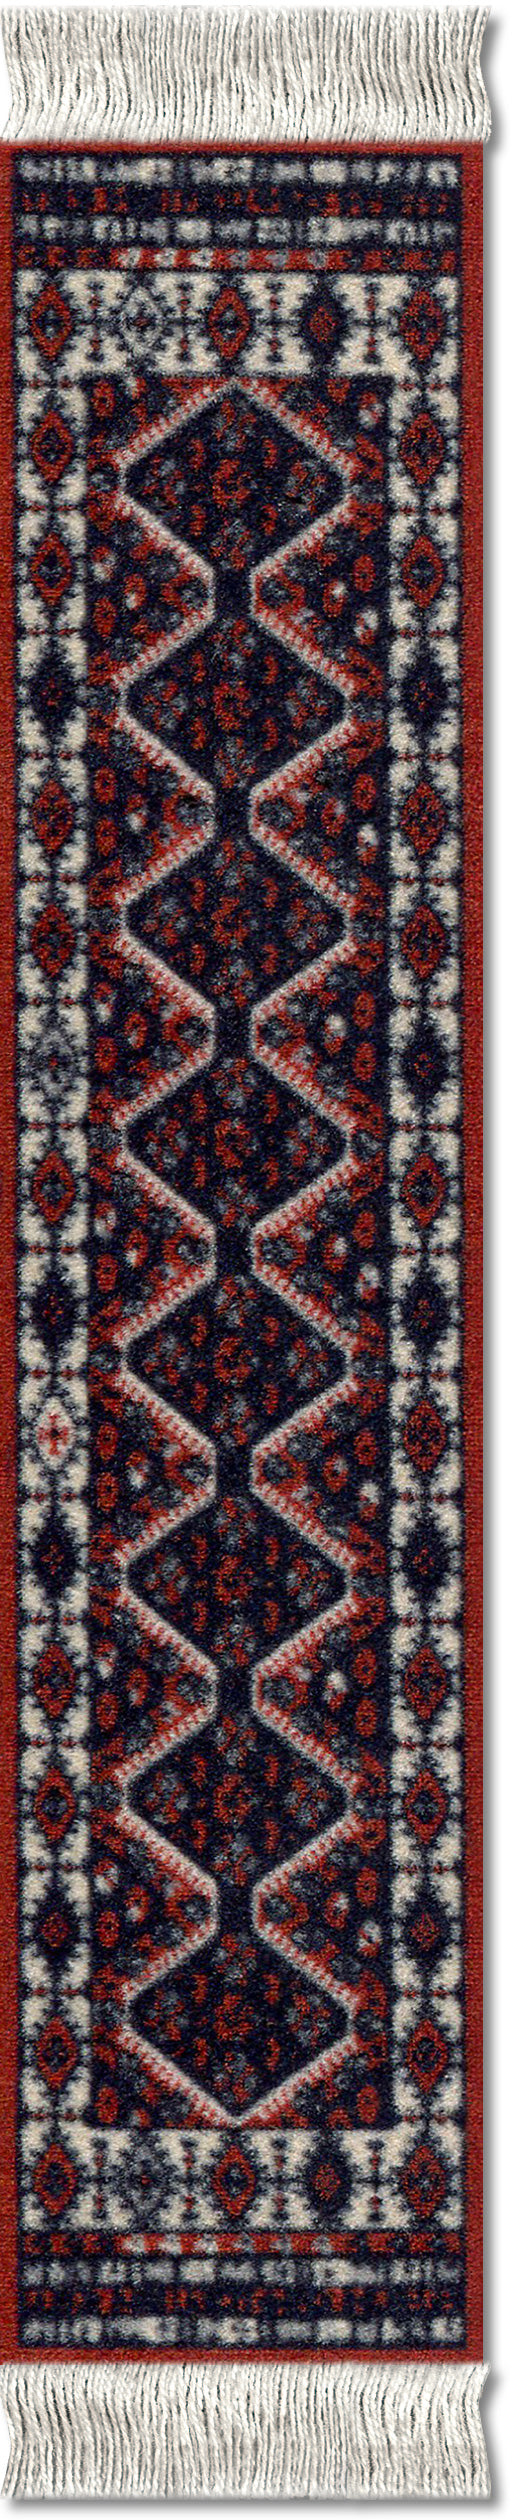 Freud Book Rug